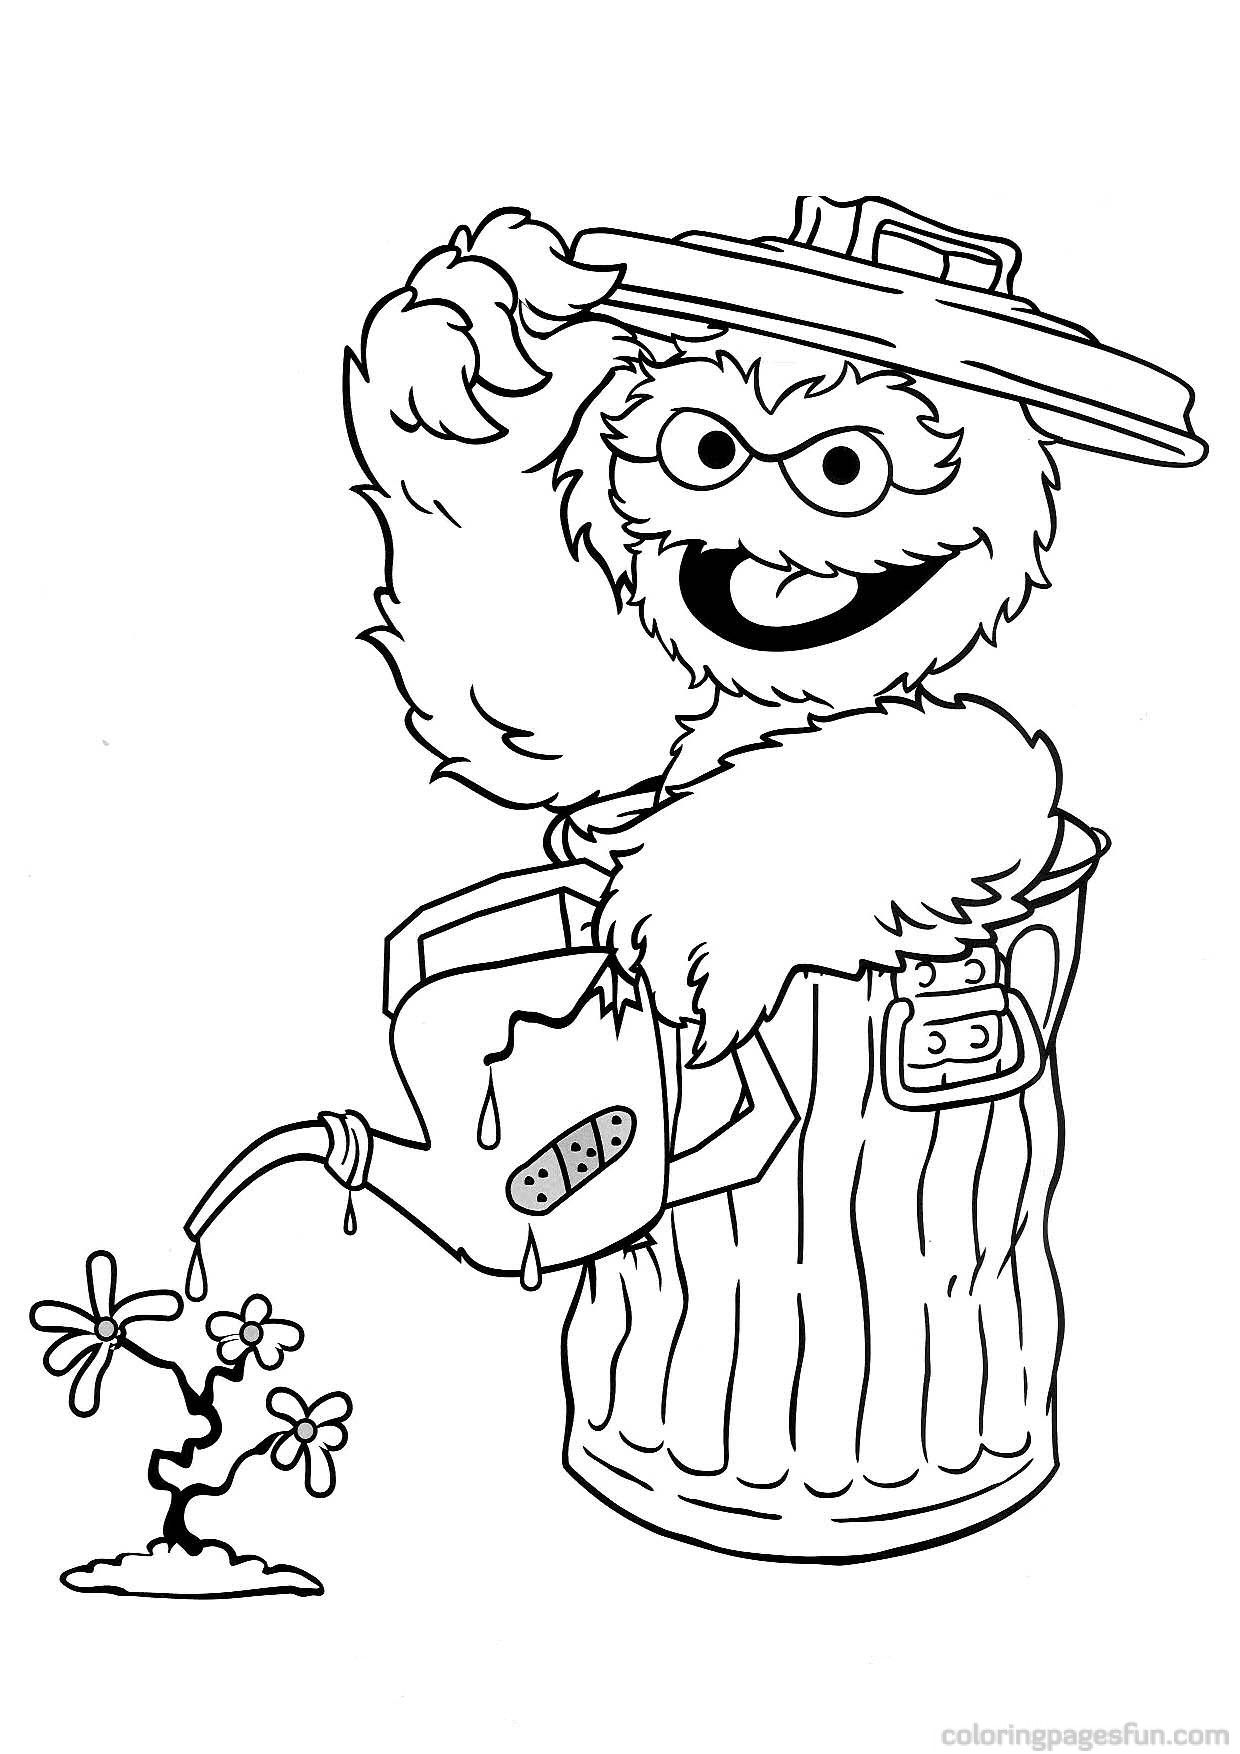 Sesame Street Coloring Pages Awesome Coloring Pages   Sesame Street - Free Printable Sesame Street Coloring Pages